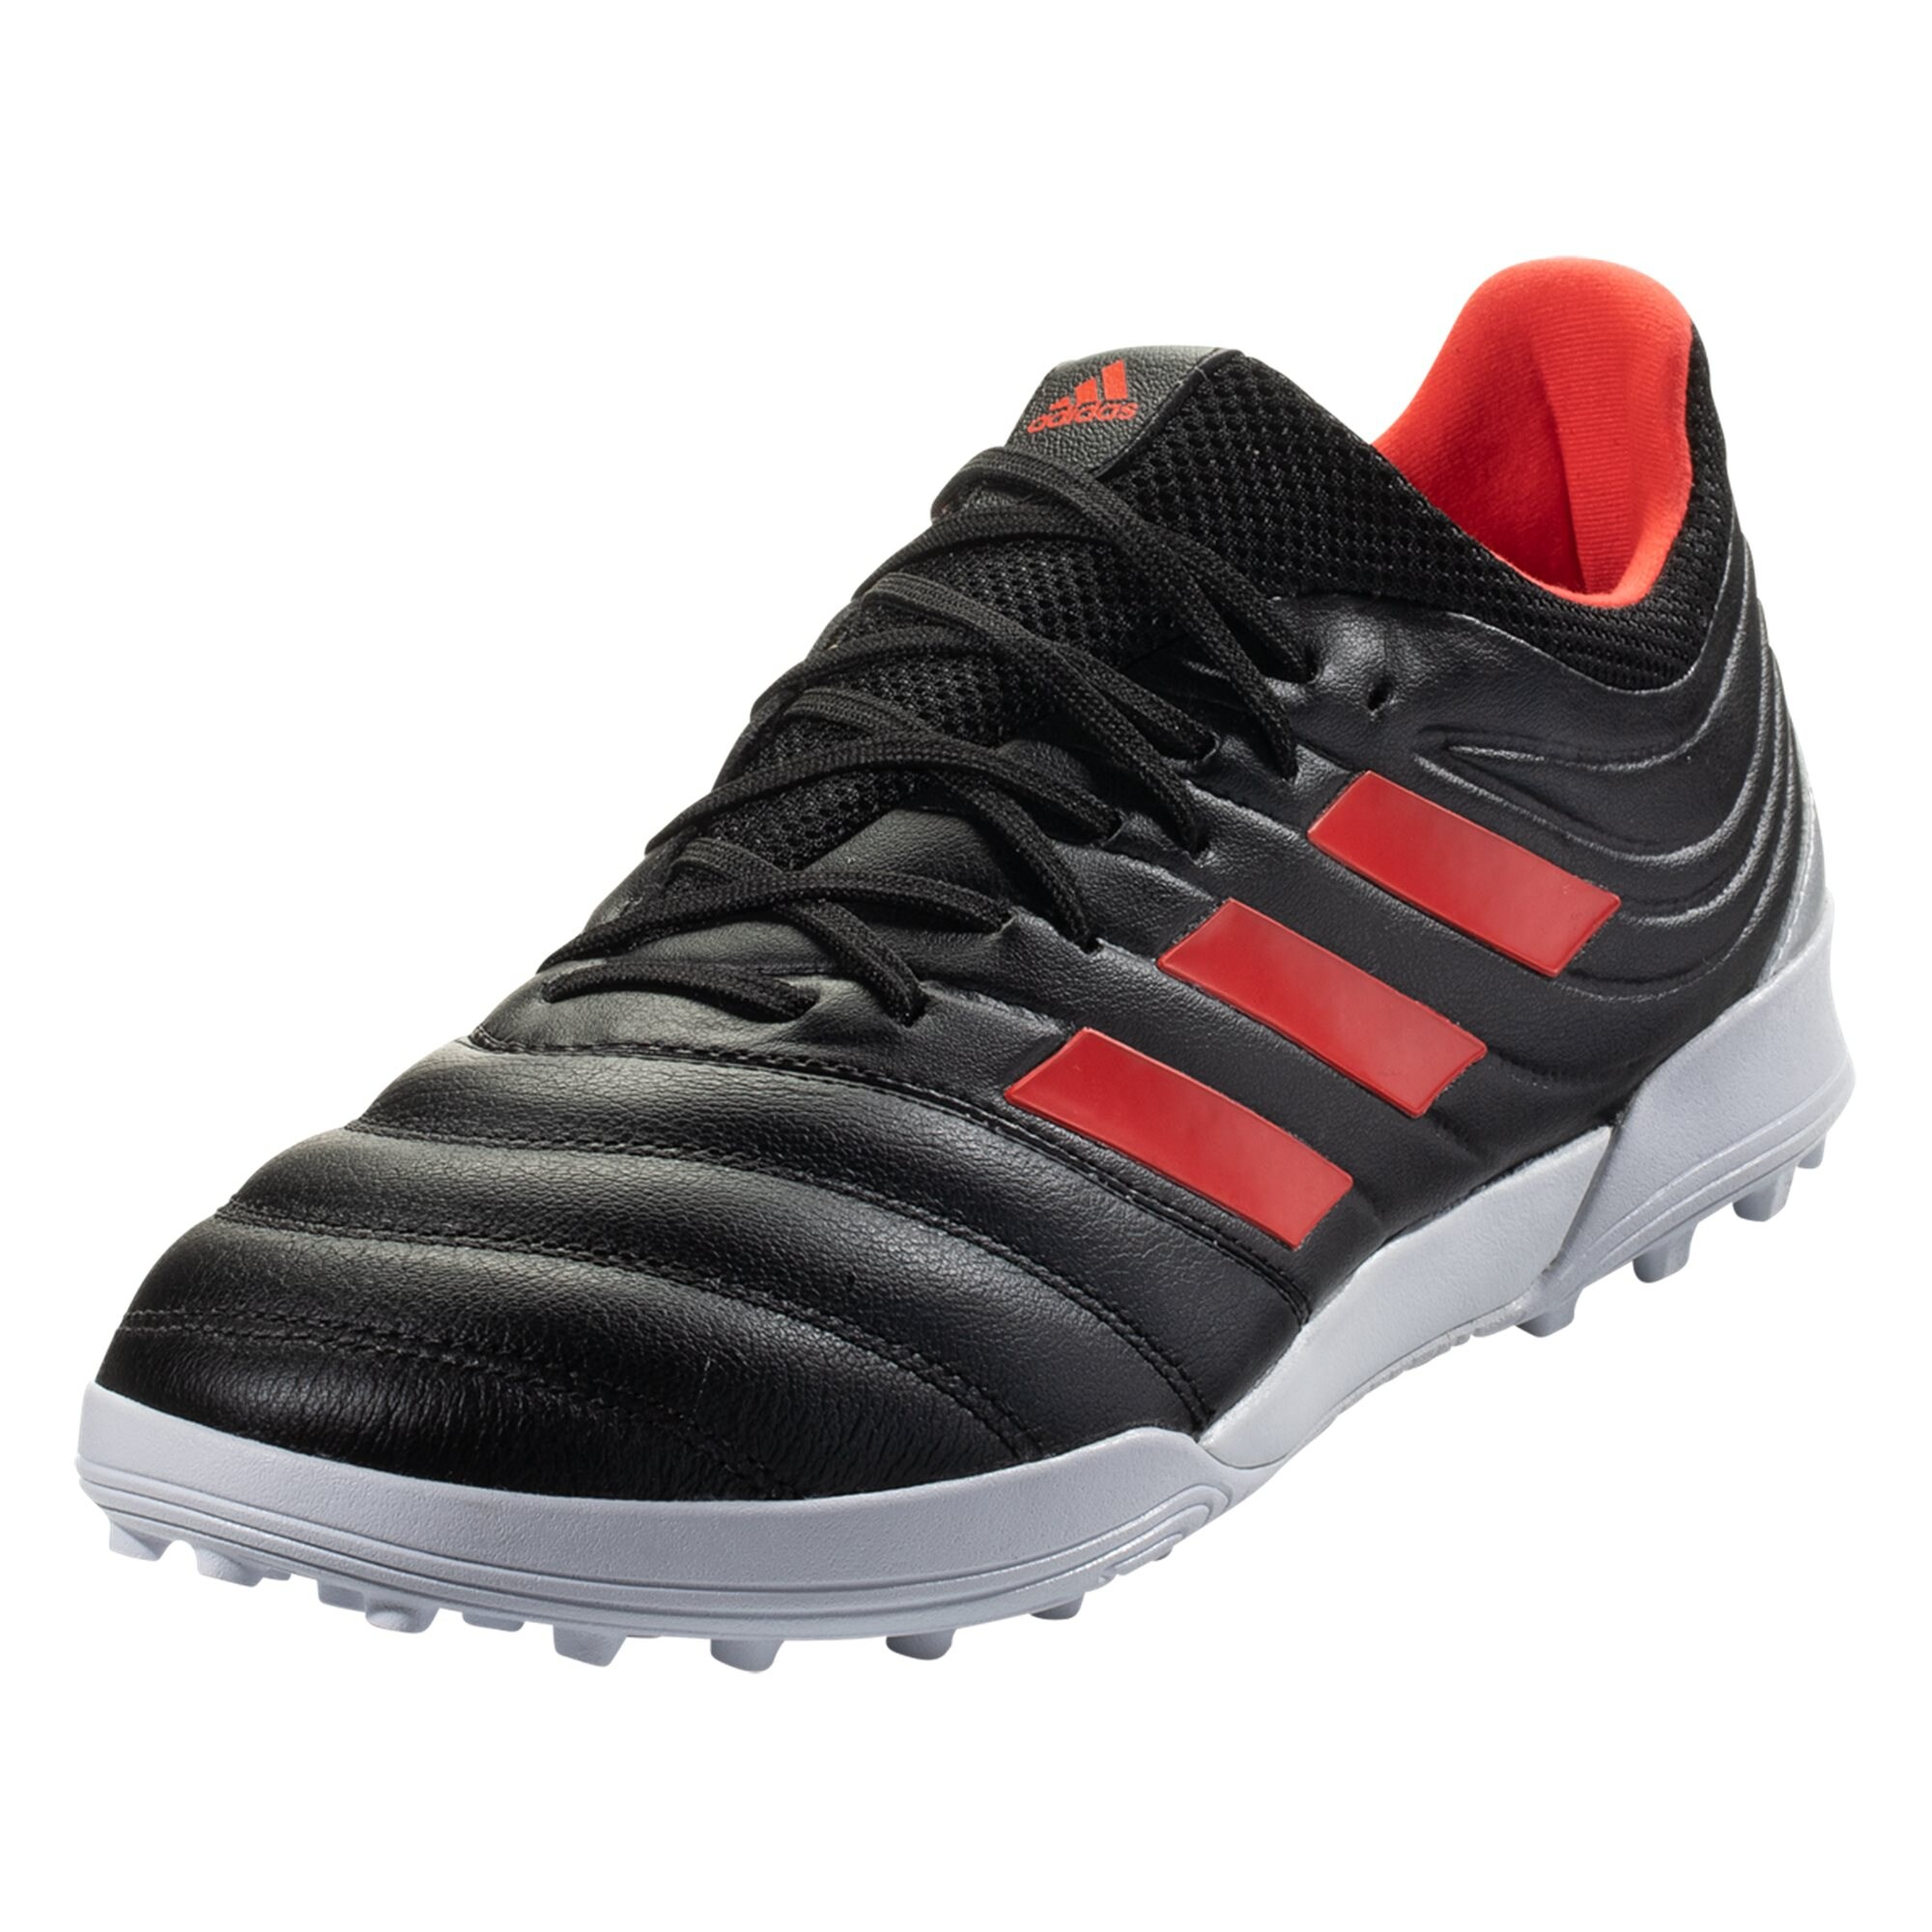 adidas Copa 19.3 TF Artificial Turf Soccer Shoe - Core Black / Hi-Res Red / Metallic Silver